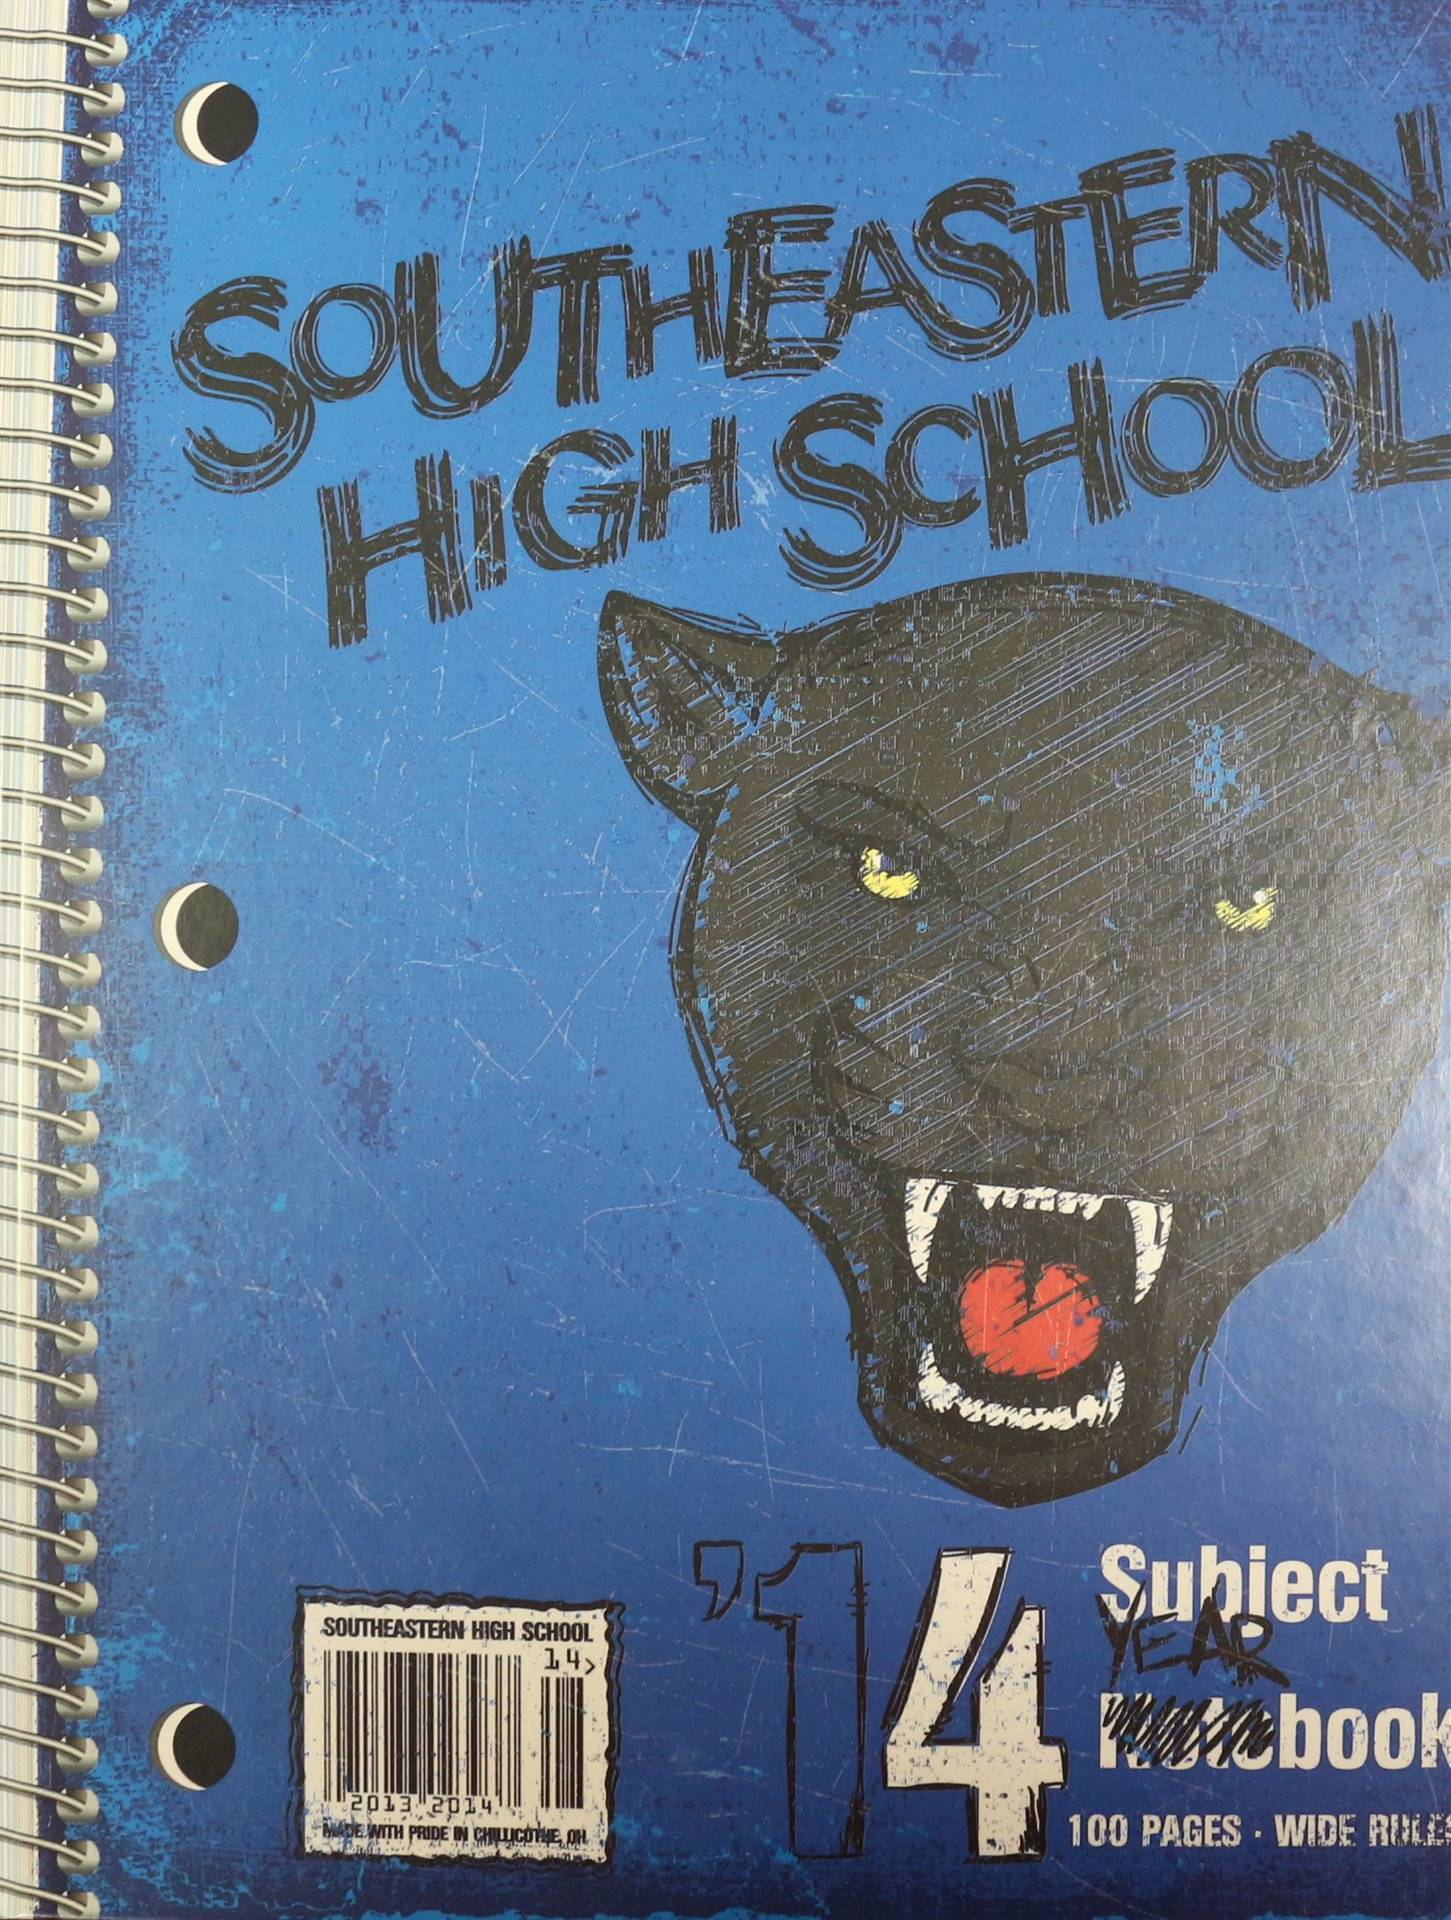 2014 Yearbook Title